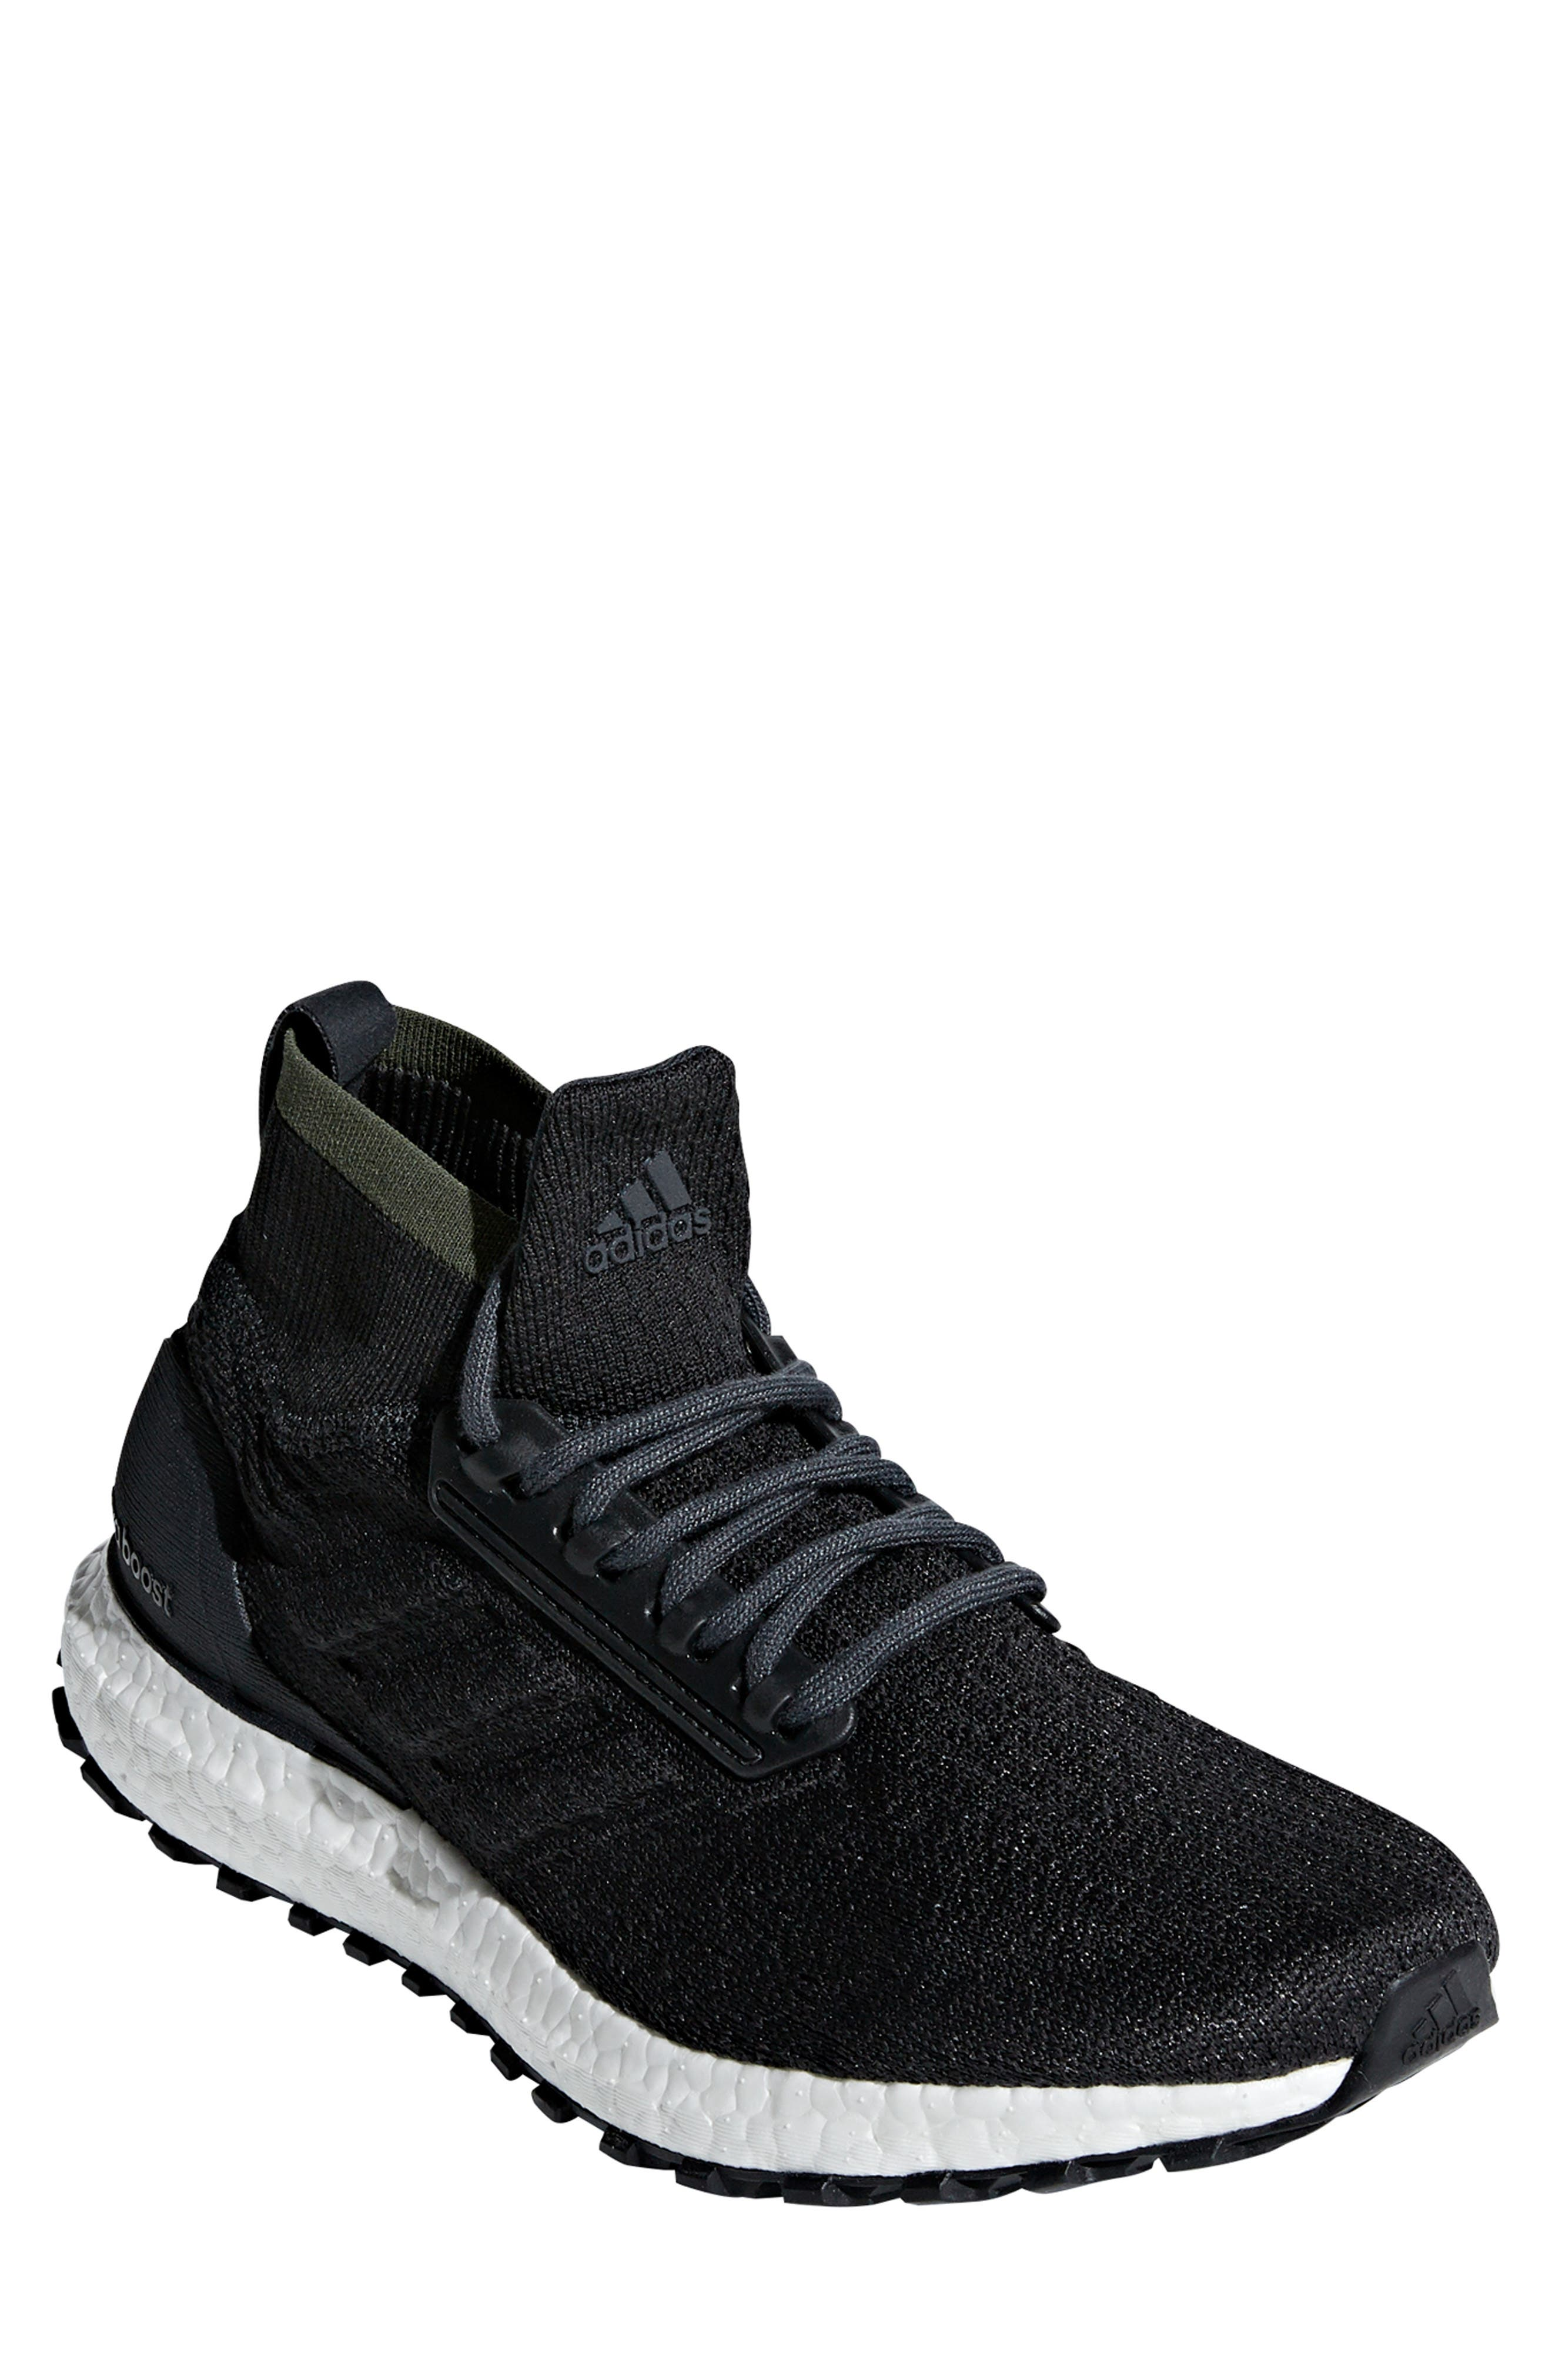 UltraBoost All Terrain Water Resistant Running Shoe,                             Main thumbnail 1, color,                             CARBON / CORE BLACK / WHITE